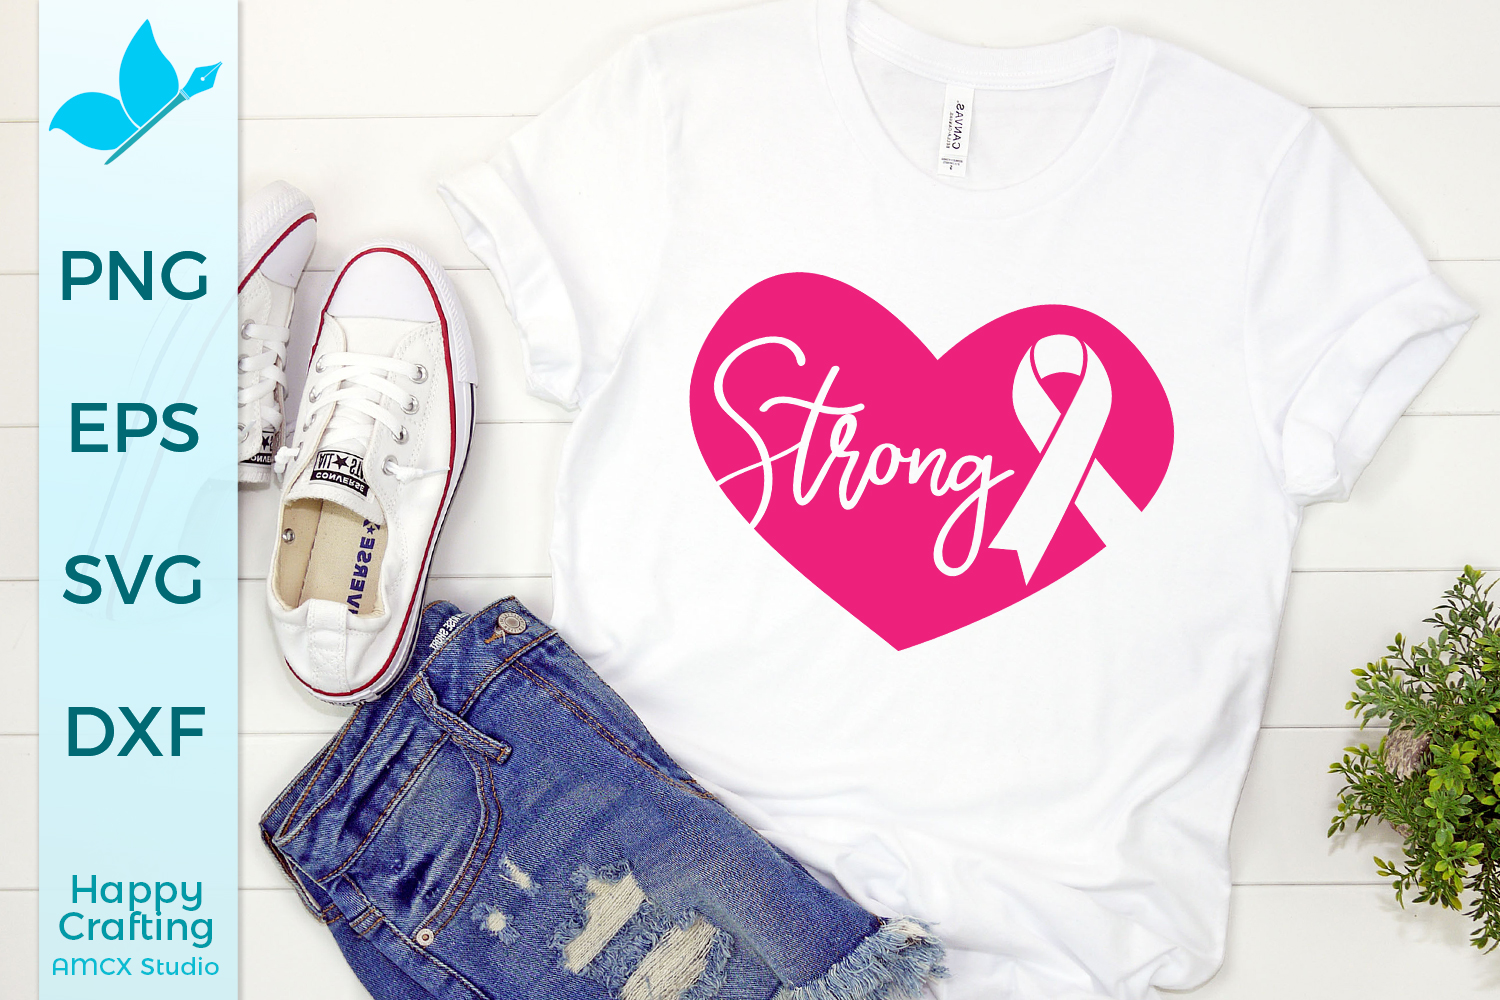 Strong Breast Cancer Awareness SVG